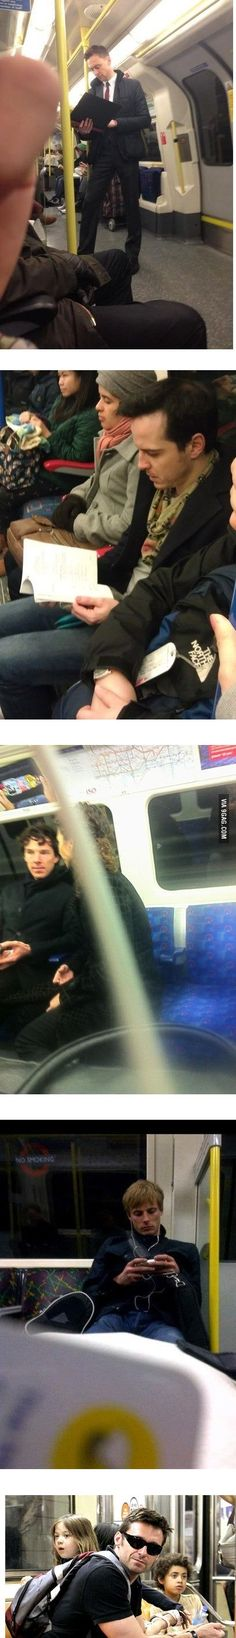 I expect to see the either Tom, Benedict, or Andrew when I go to London!